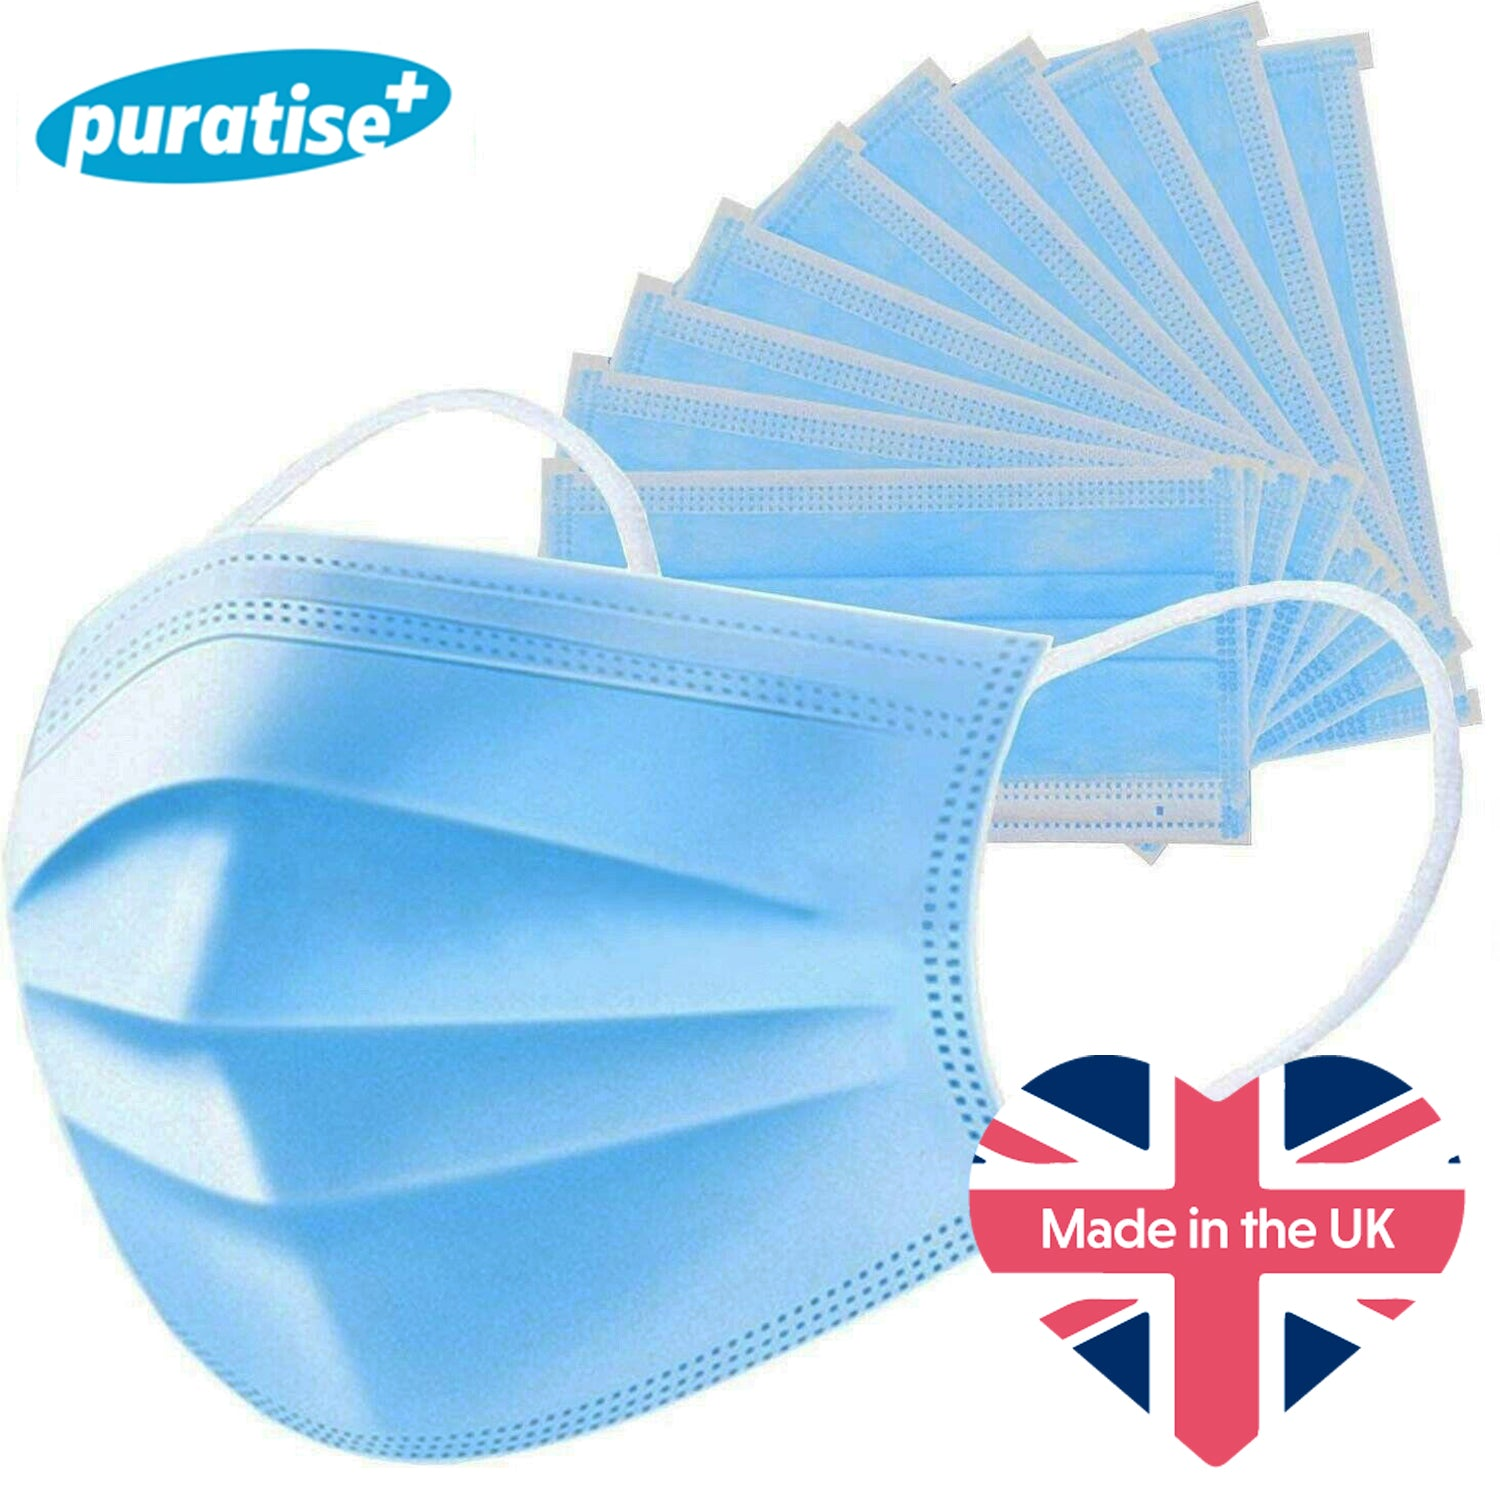 Puratise Disposable 3 Ply Face Masks- 50 Per Box- Made in the UK by  Forever Cosmetics